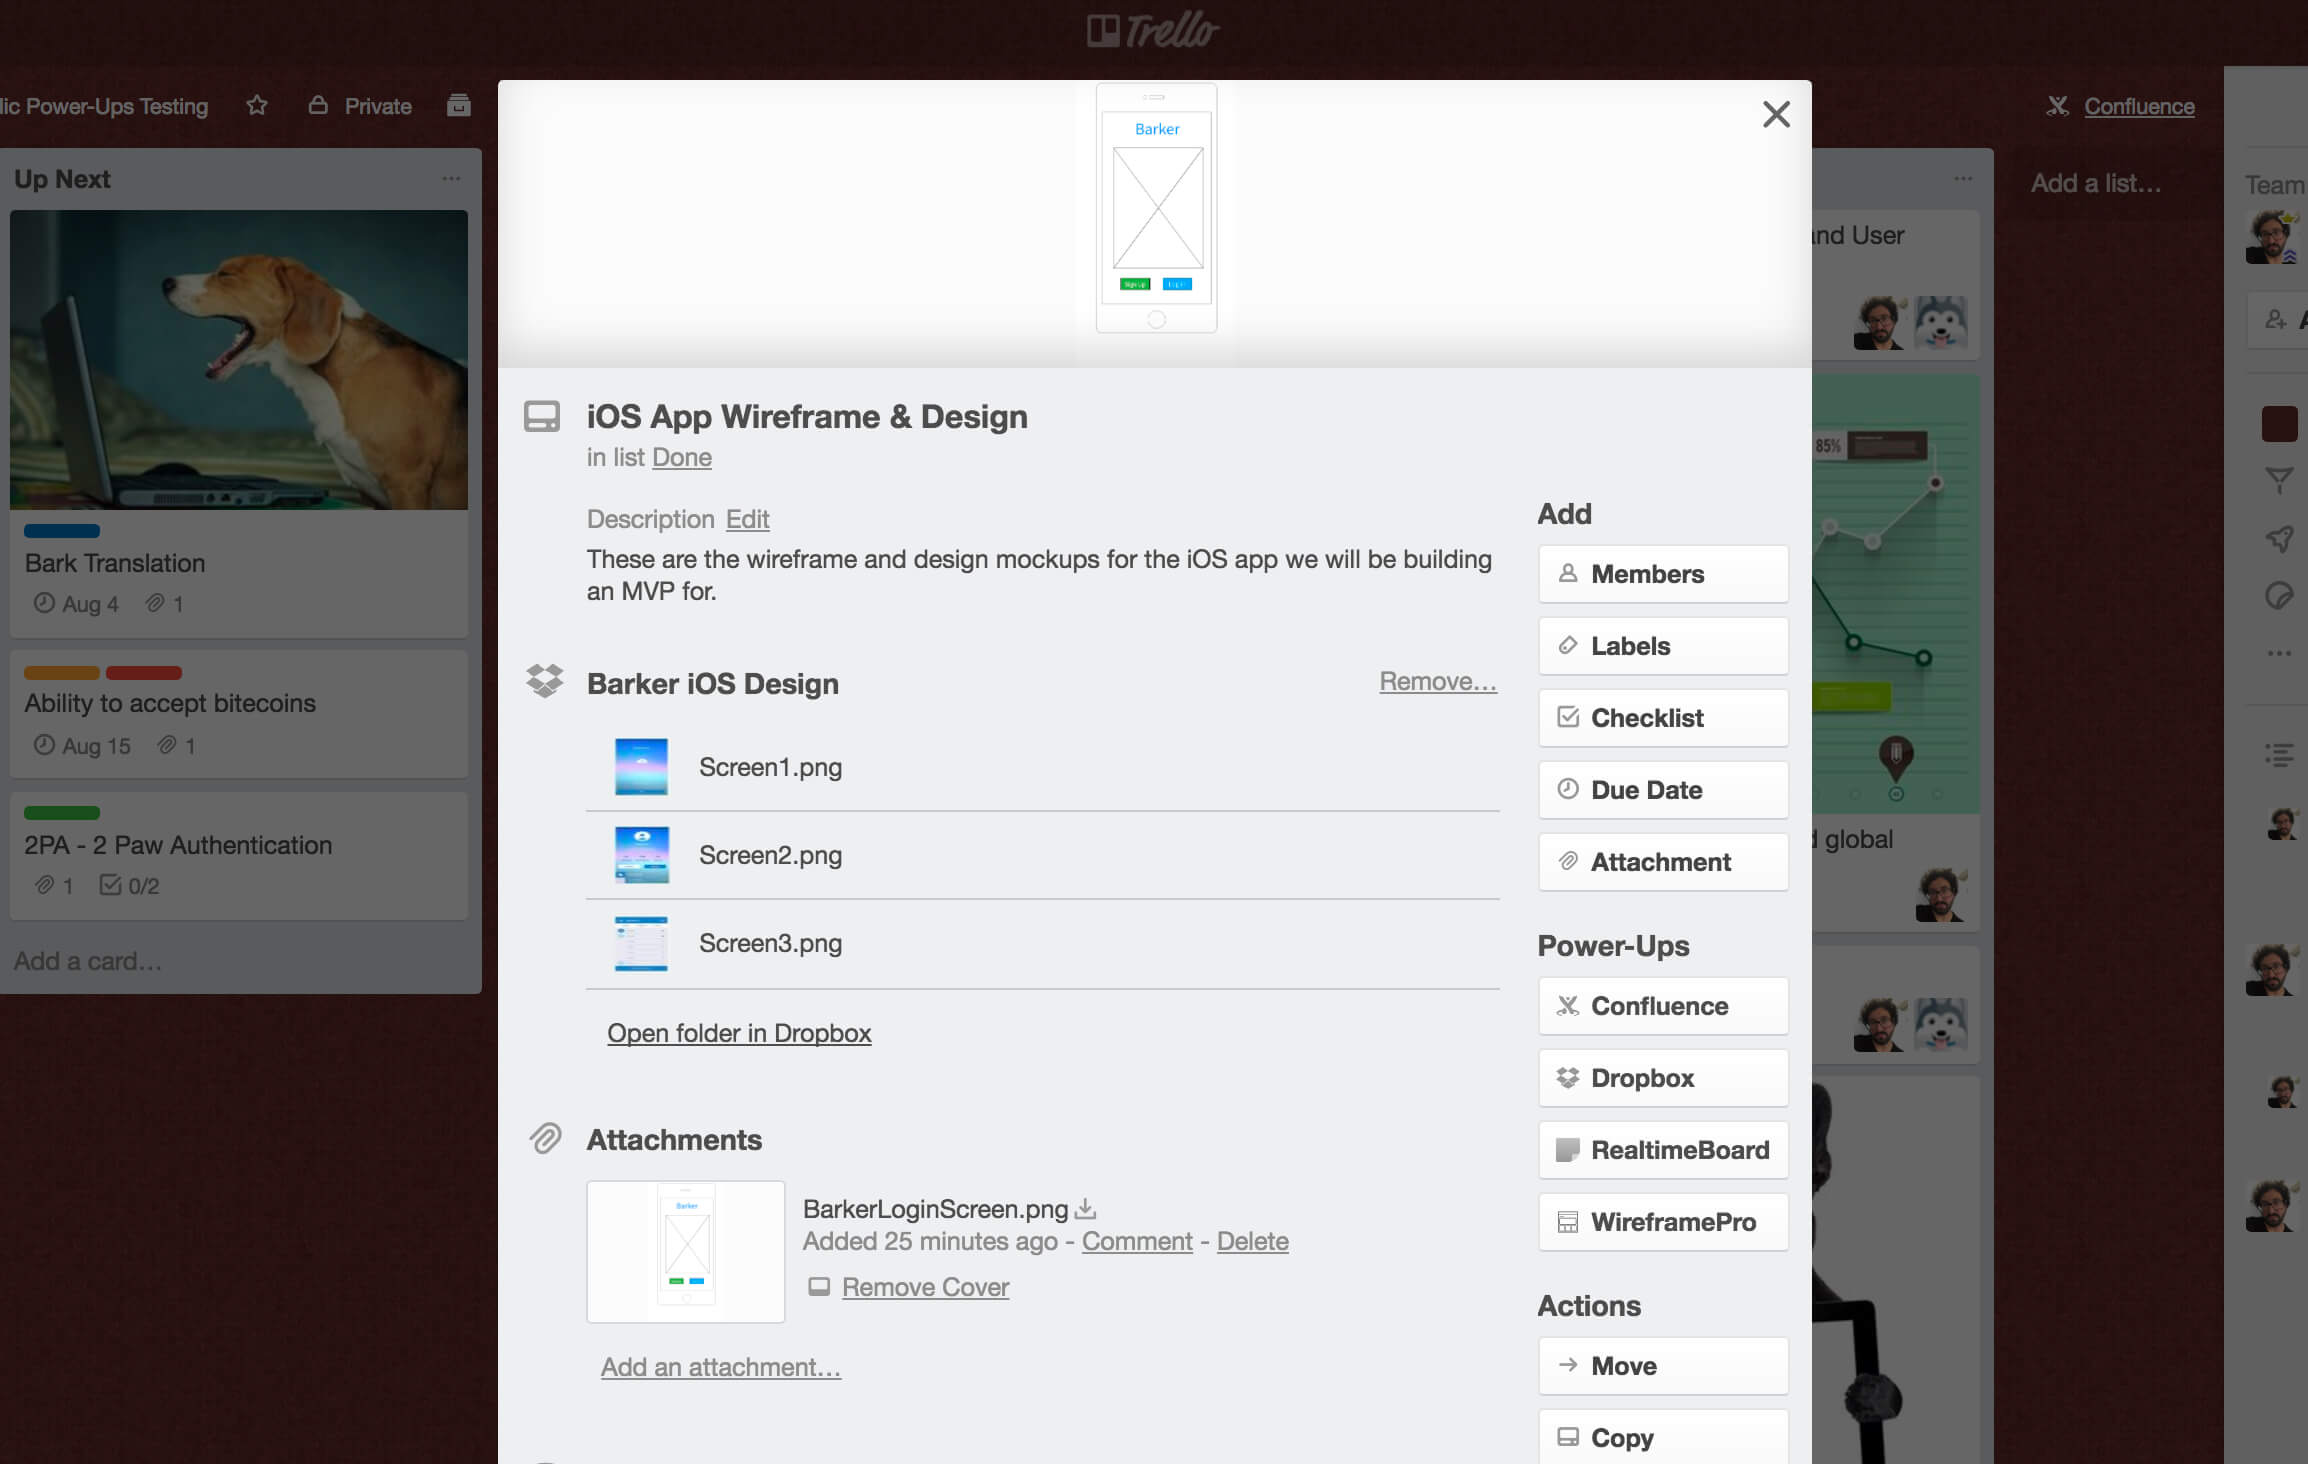 Dropbox Trello Power-Up